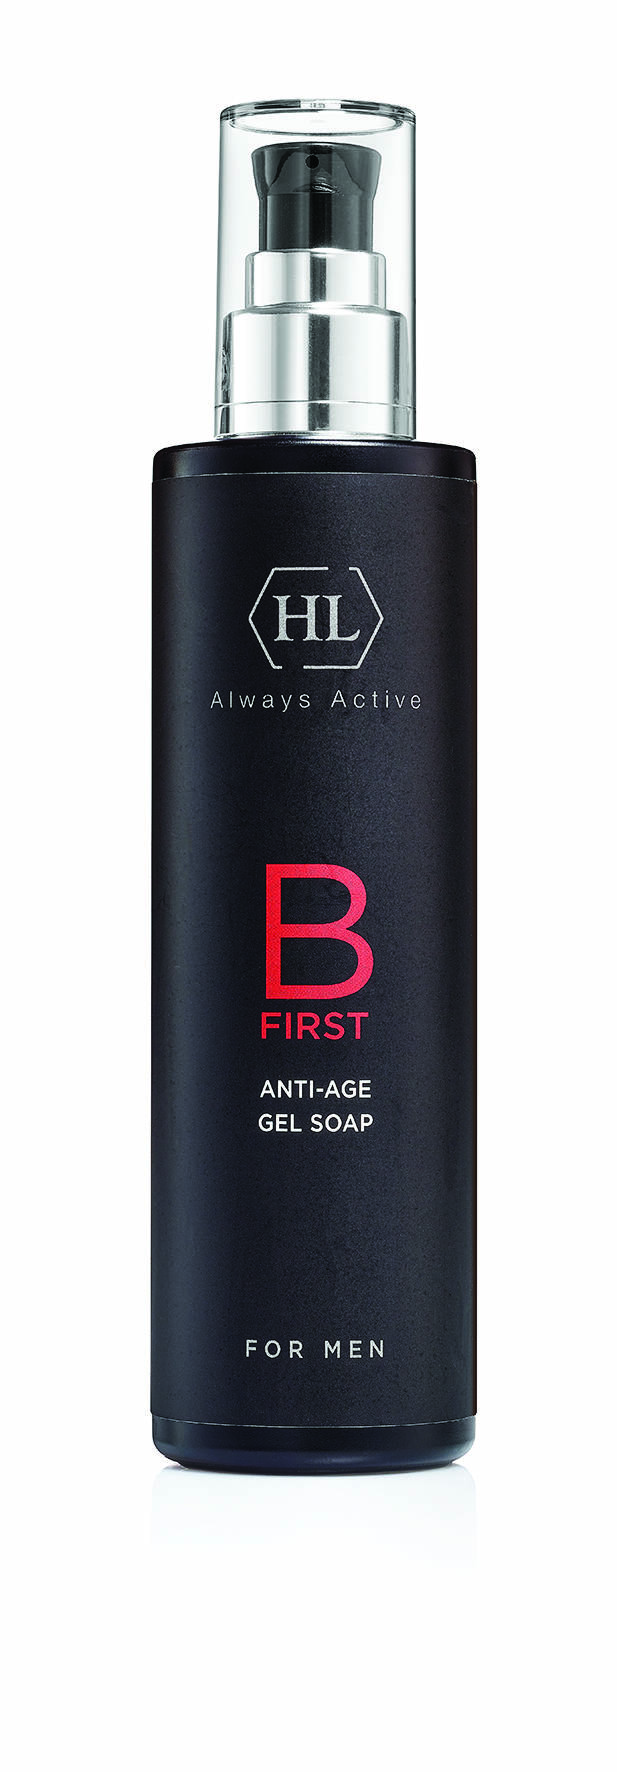 B-First ANTI-AGE GEL SOAP 250ml